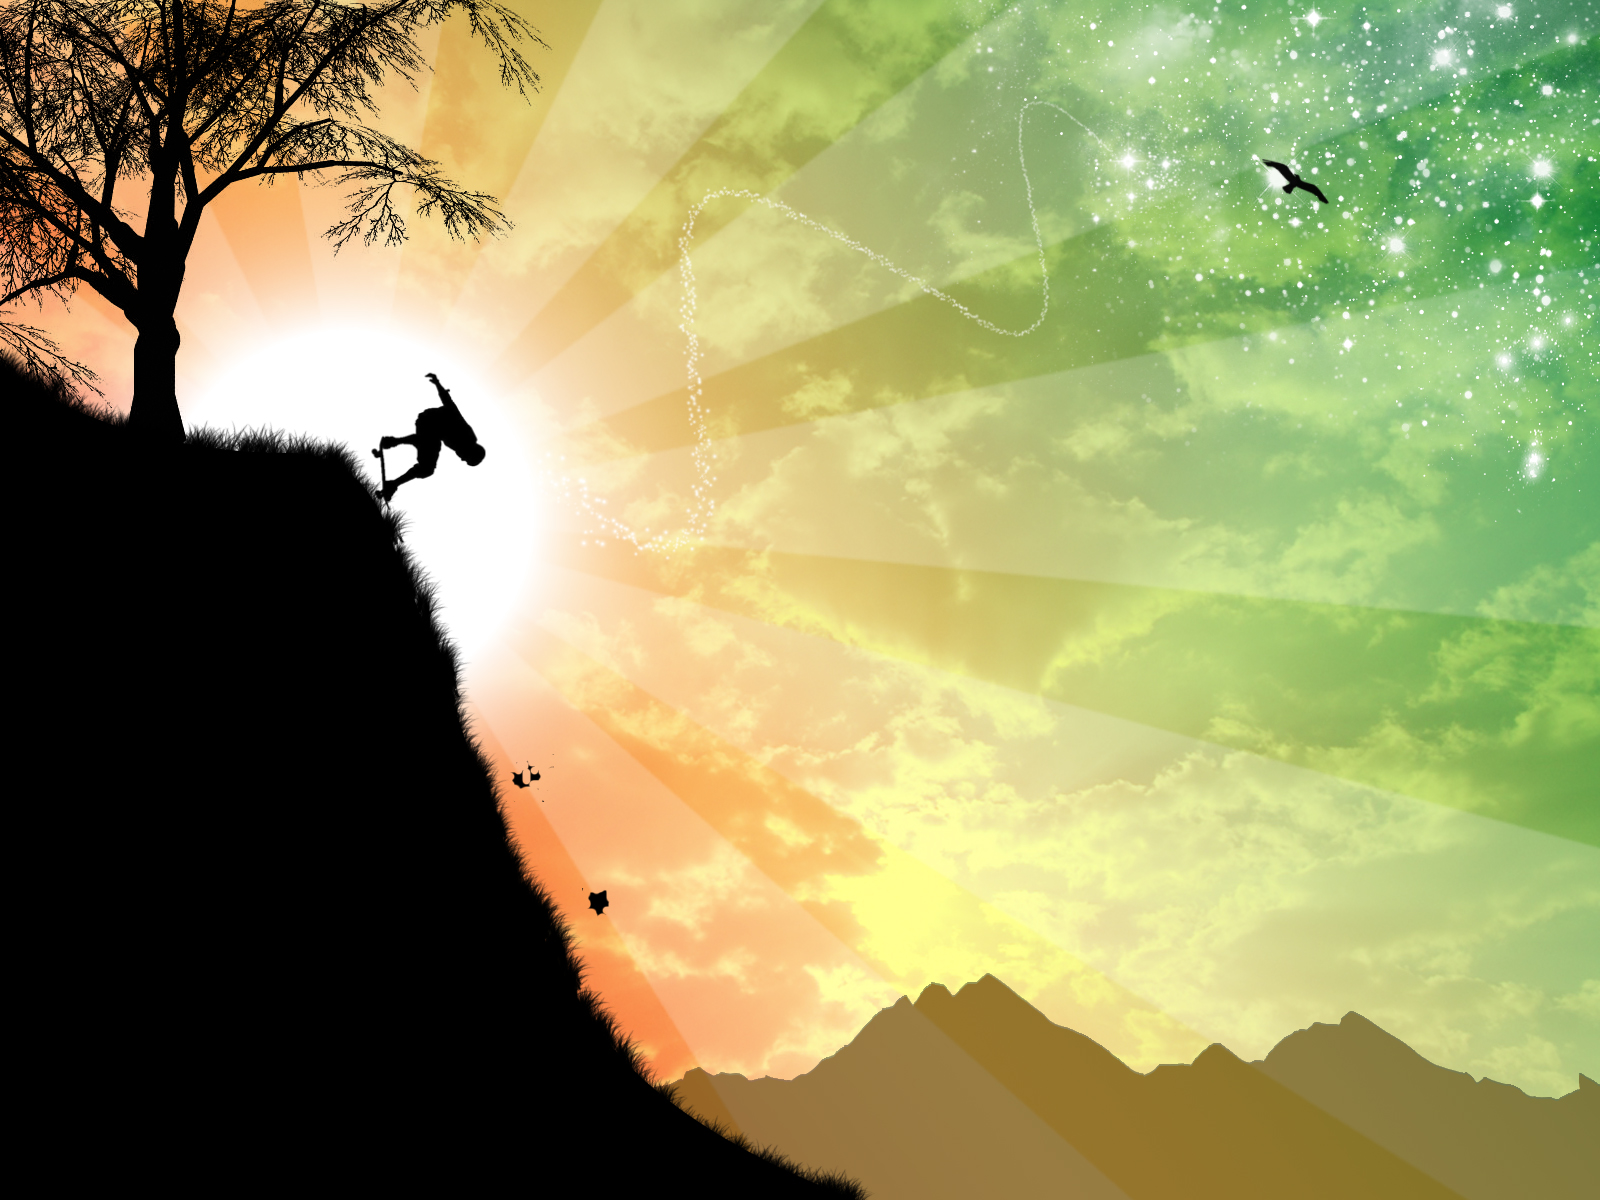 Mountain Skateboarder by kandiart